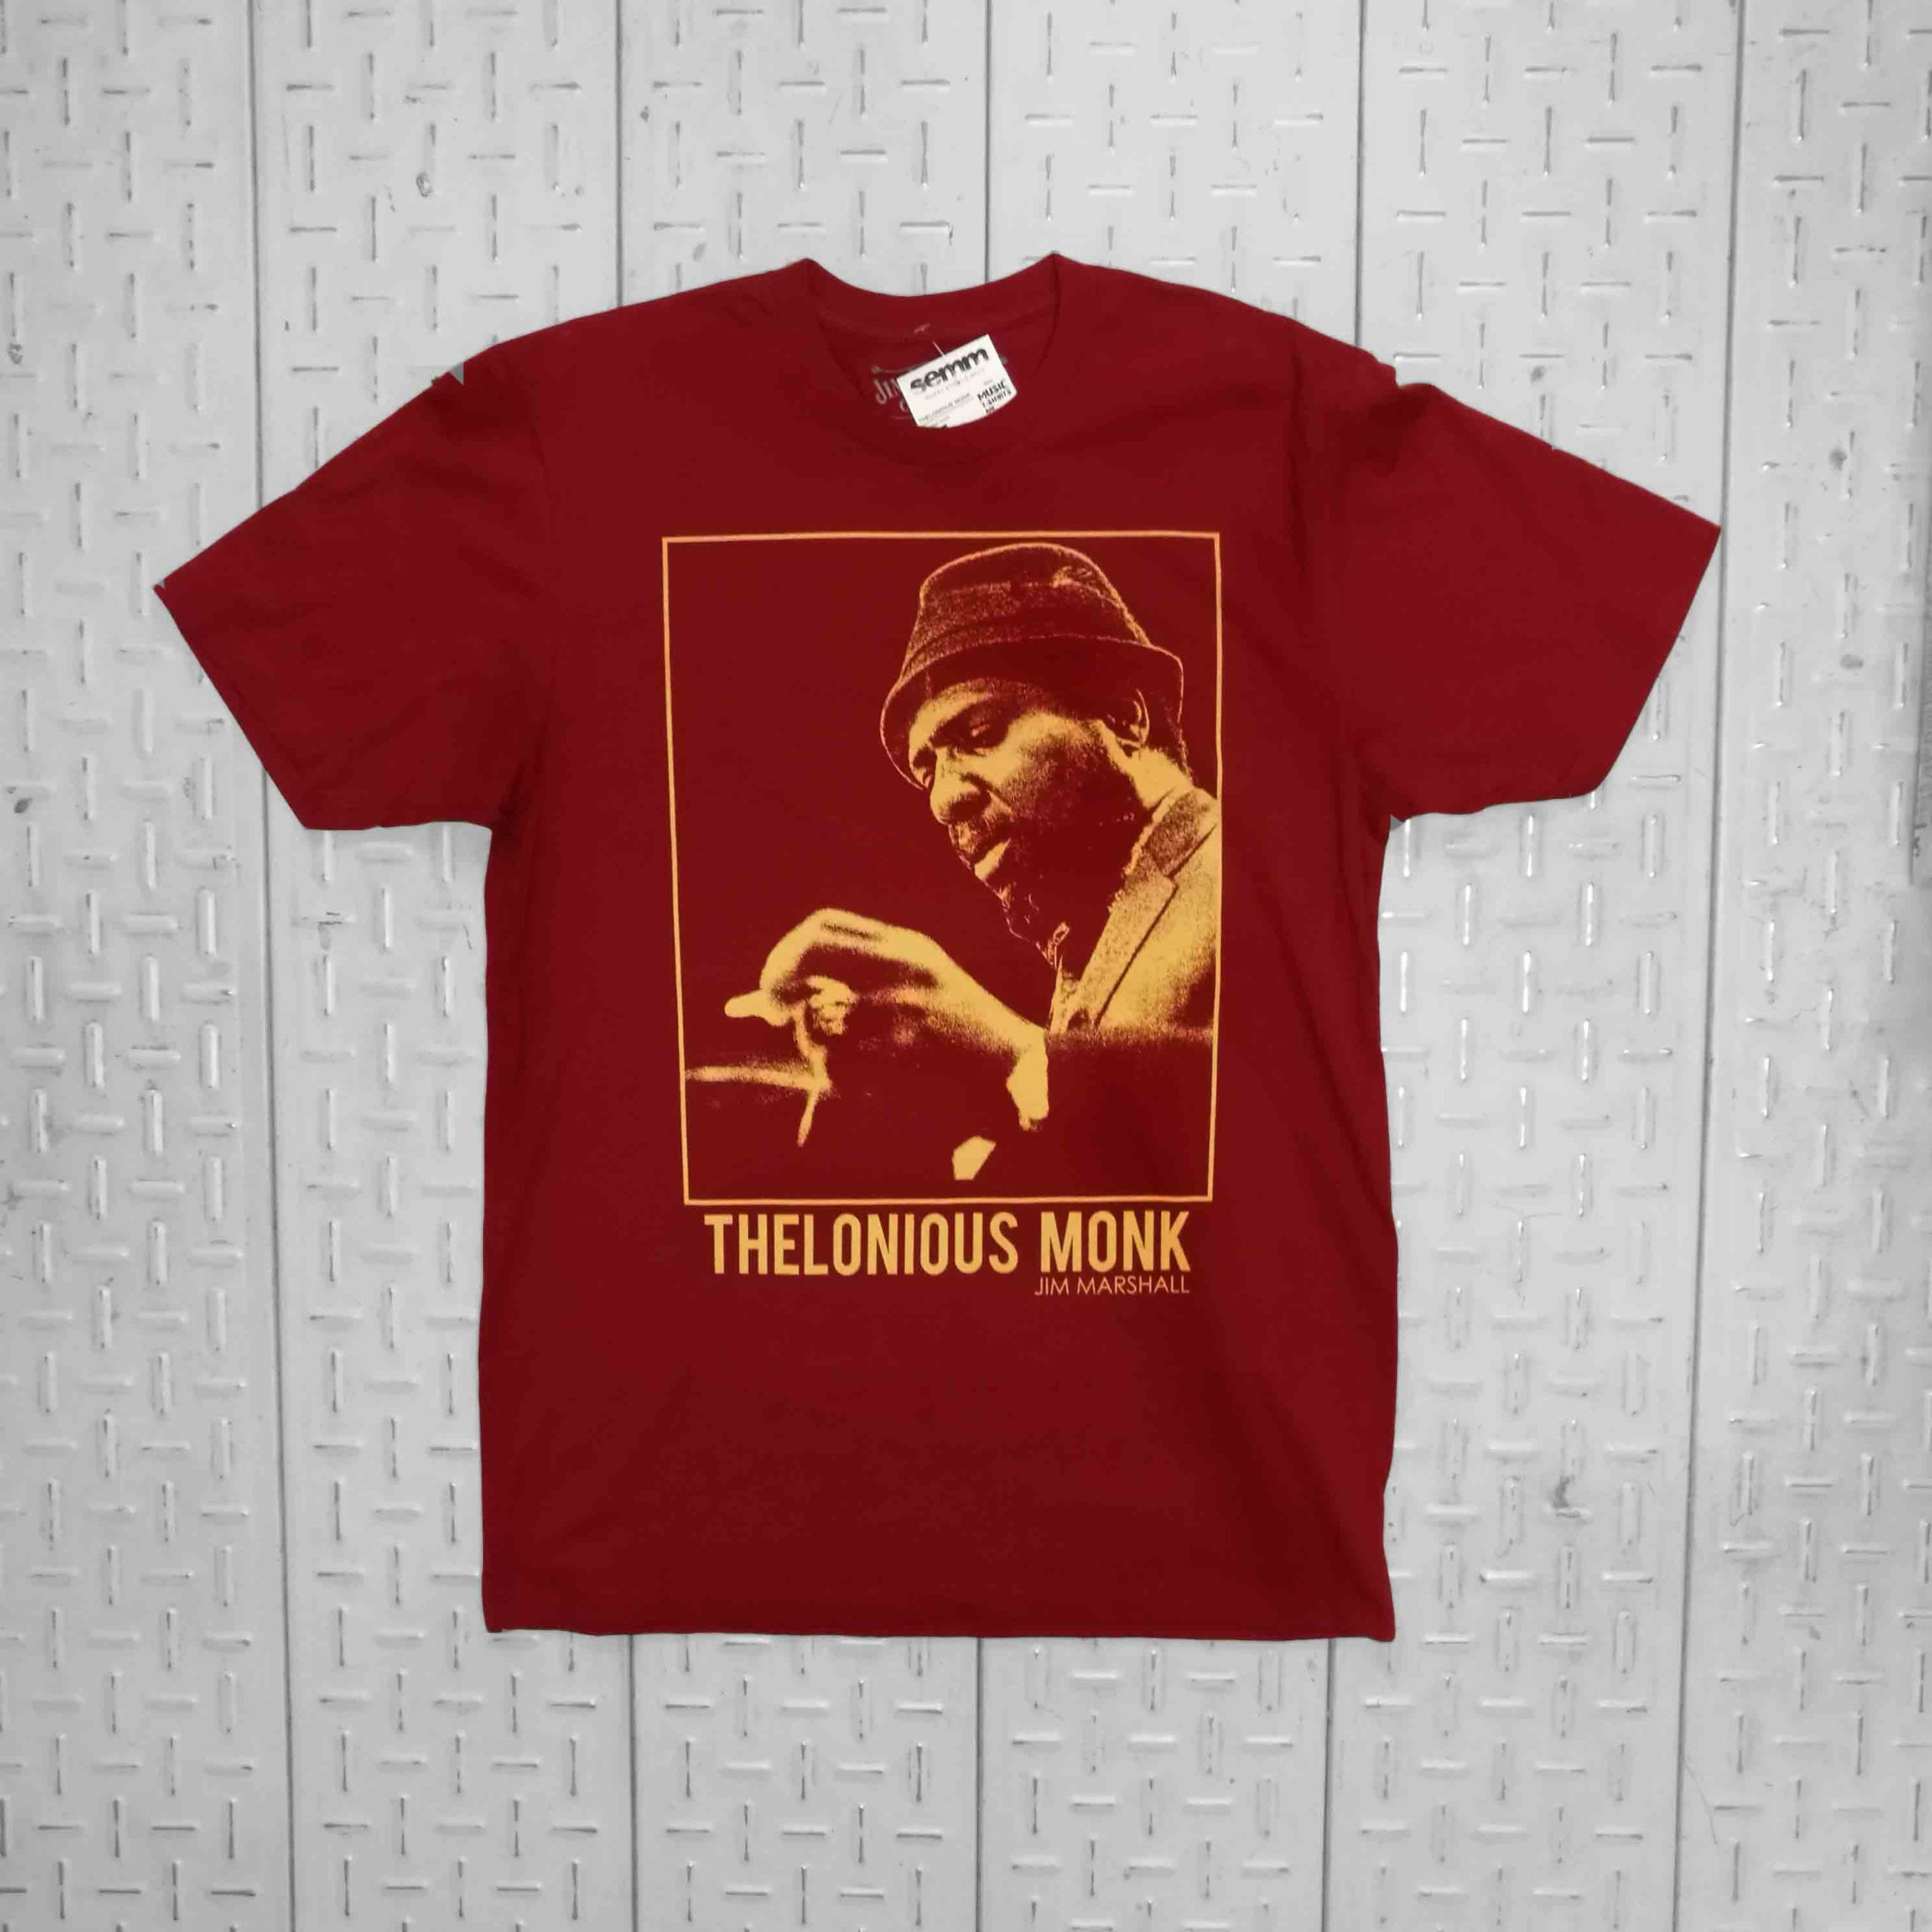 THELONIOUS-MONK-T-shirt